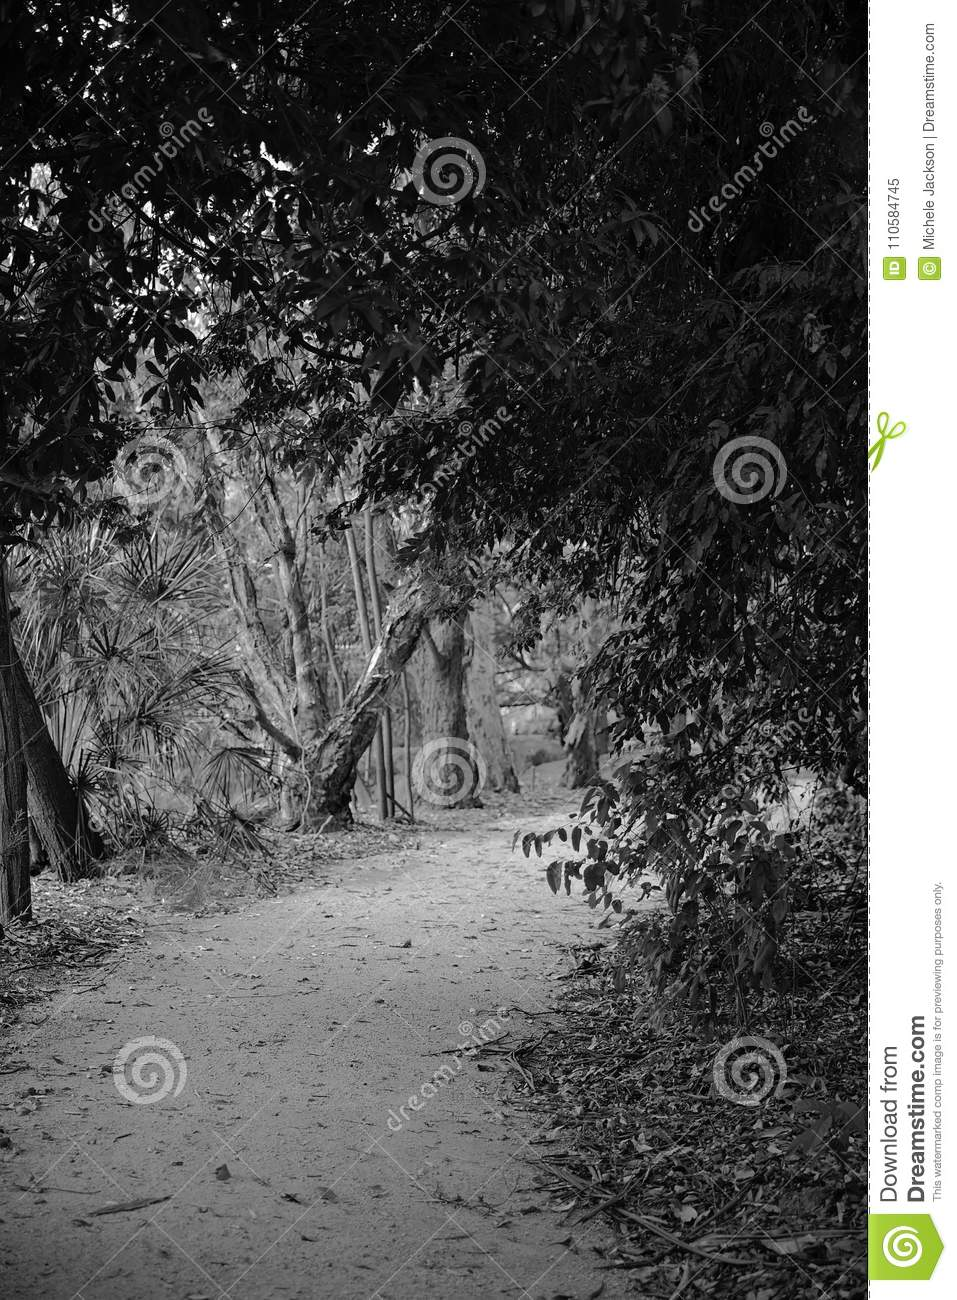 Black And White Image Of Pathway In A Forest Stock Image ...